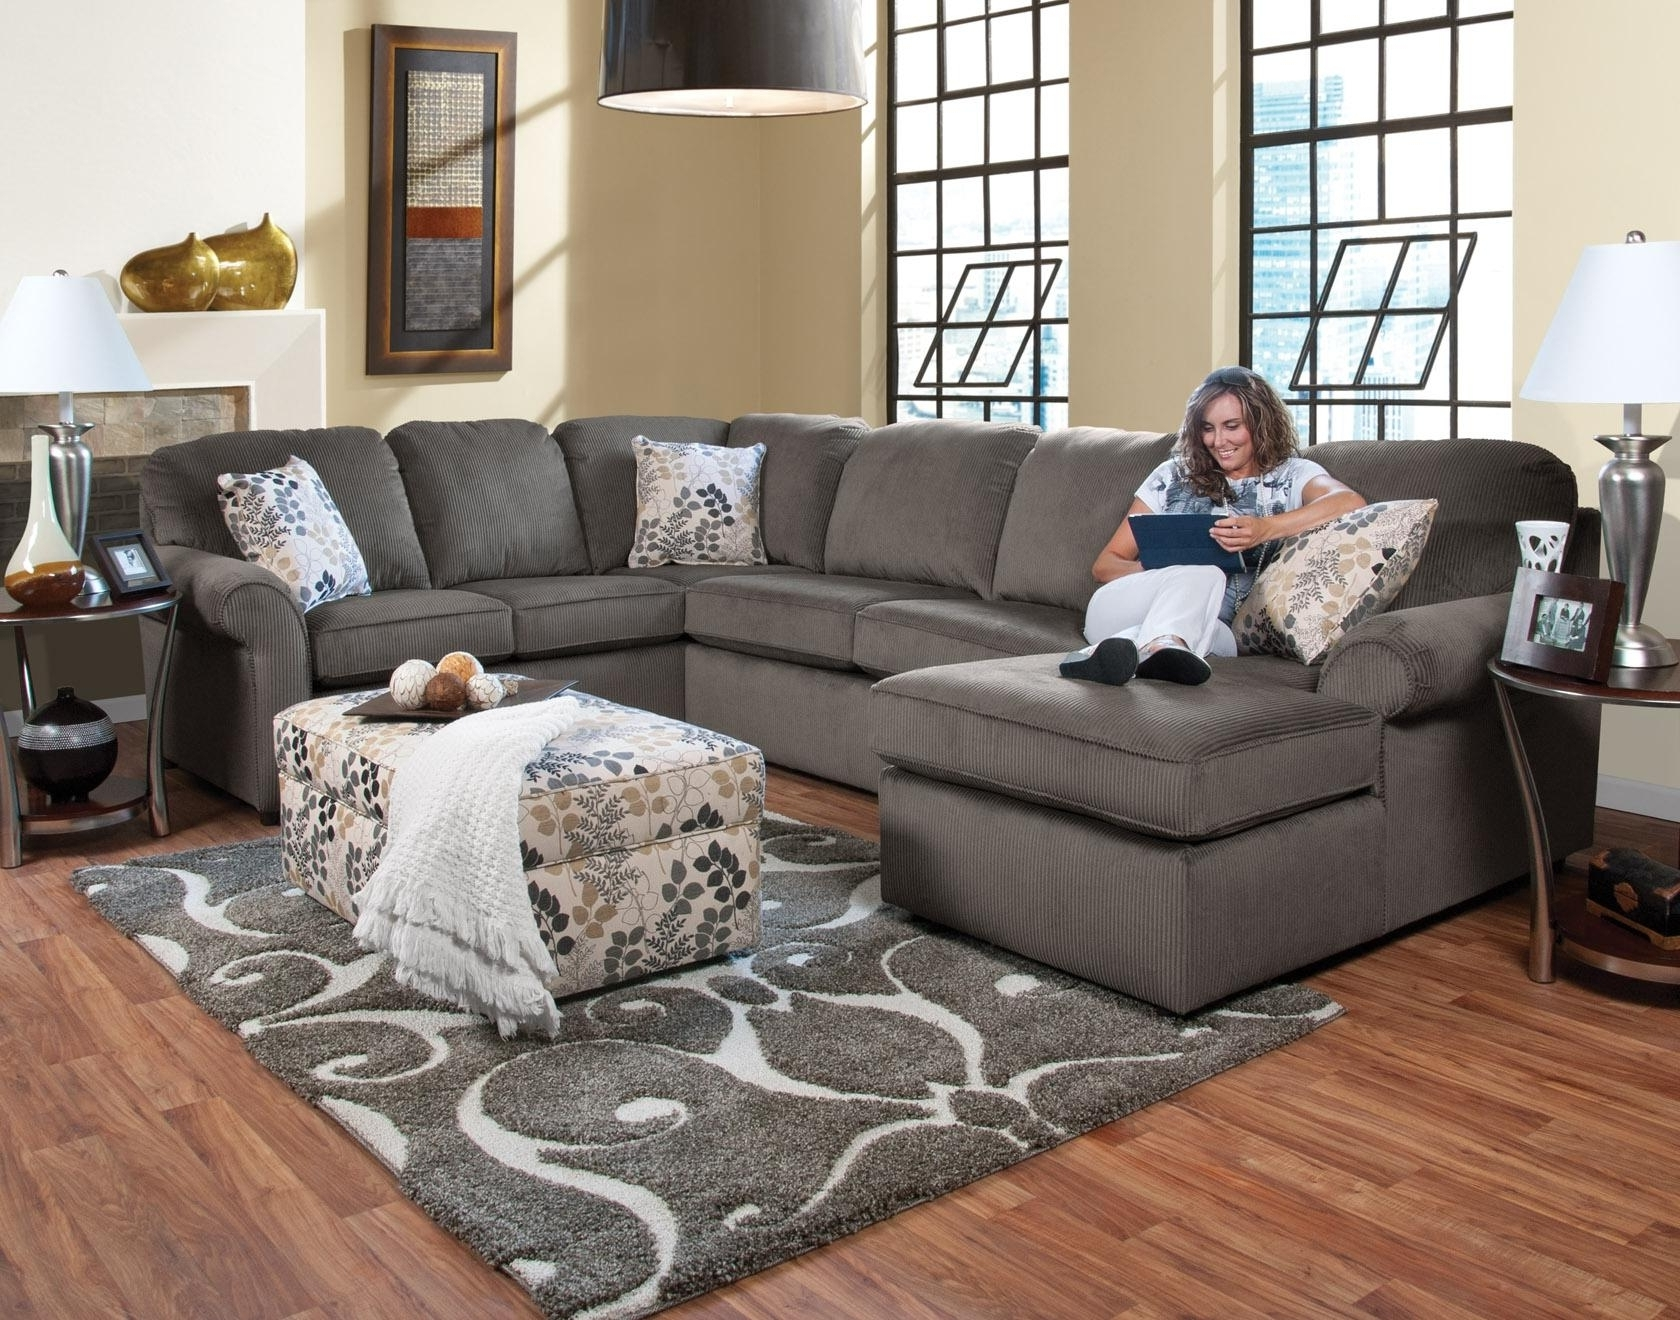 Latest England Sectional Sofa 7300 • Sectional Sofa Regarding England Sectional Sofas (View 12 of 20)